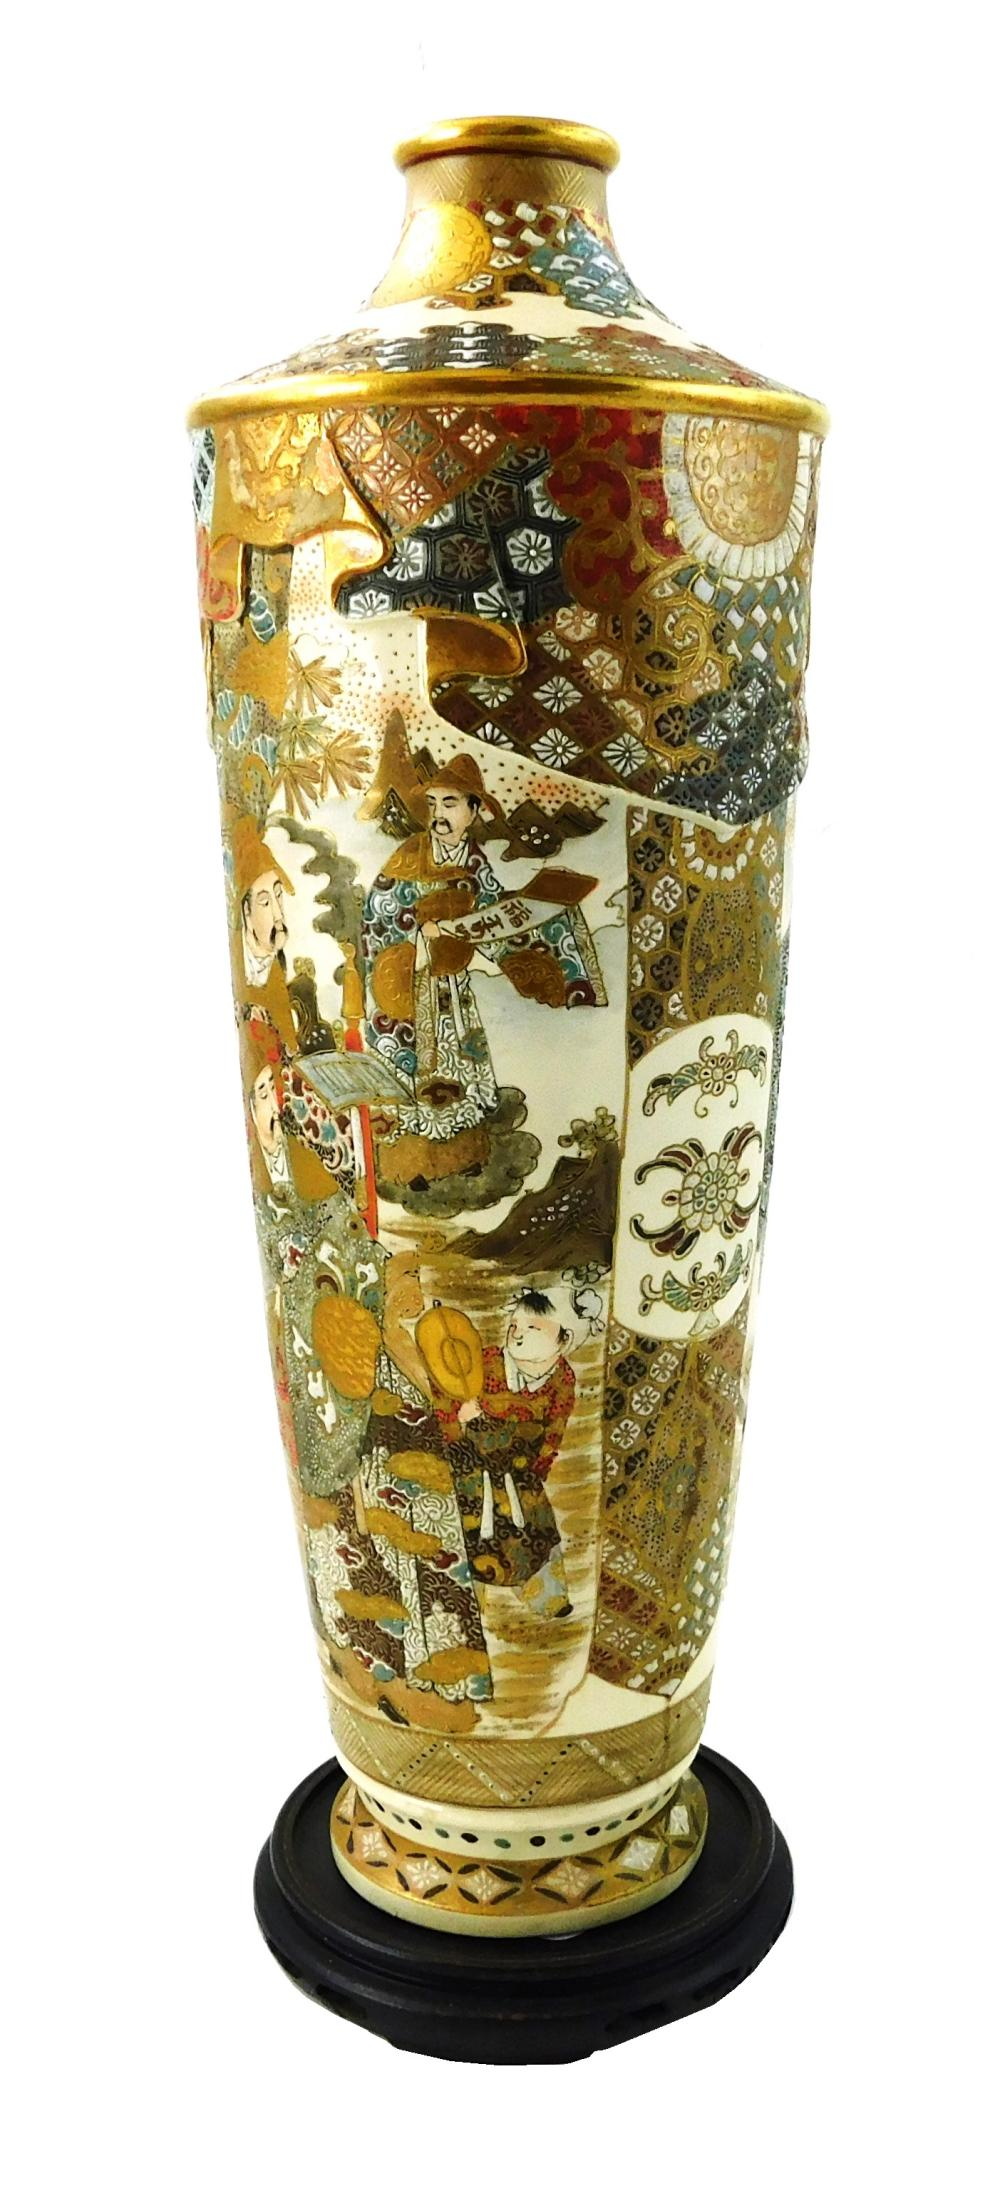 ASIAN: Japanese Satsuma vase, 19th/20th C., tapering cylindrical form, decorated with warrior figures and low relief drapery cascadi...